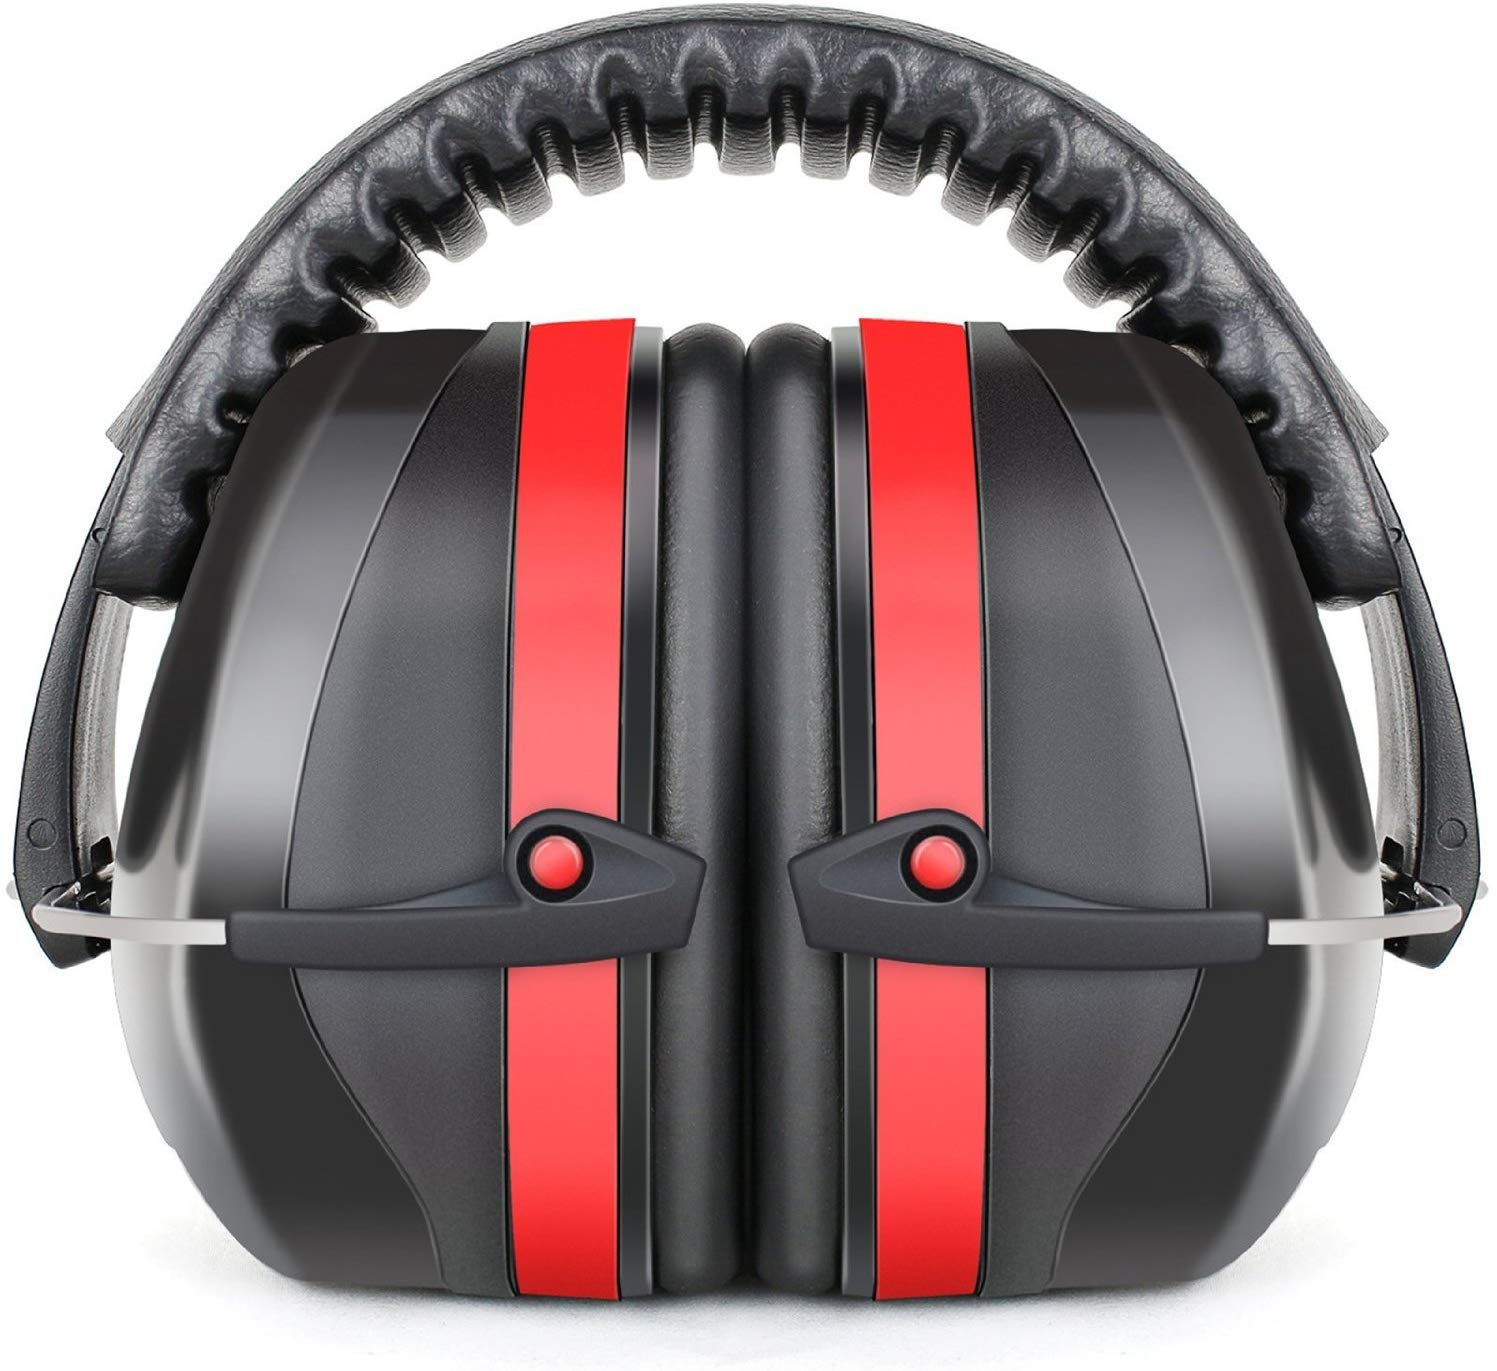 Fnova 34dB Highest NRR Safety Ear Muffs - Ear Protection for Shooting